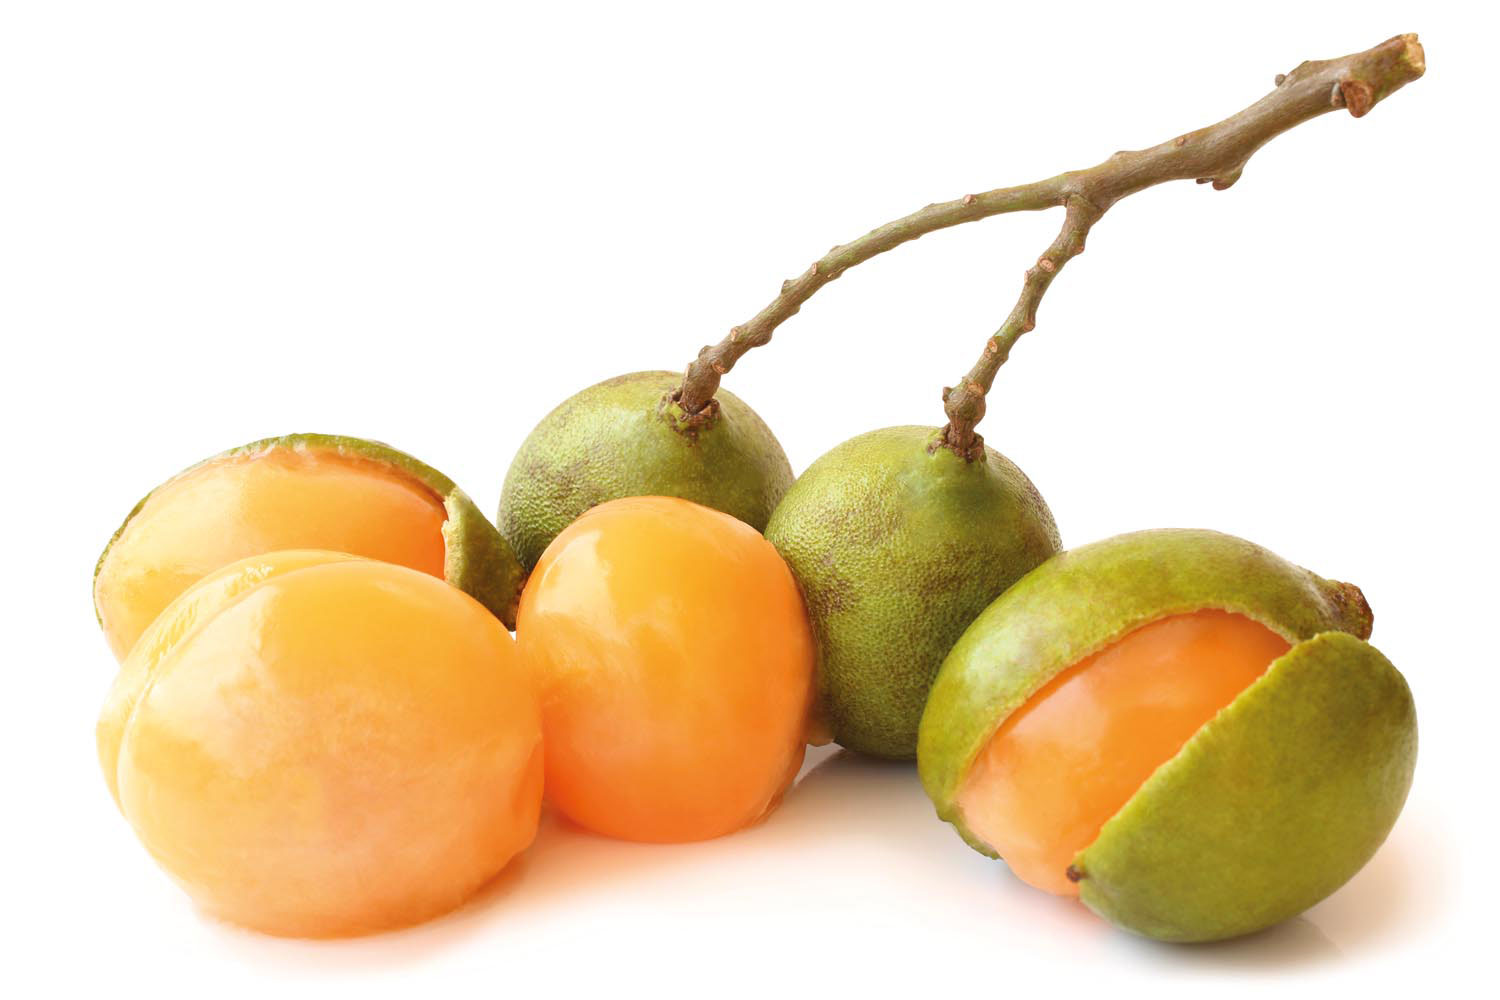 Known as guinep in Jamaica and chenette in Trinidad and Tobago, this popular fruit may offer a remedy for hypertension. Photo by Olga Popova/Shutterstock.com